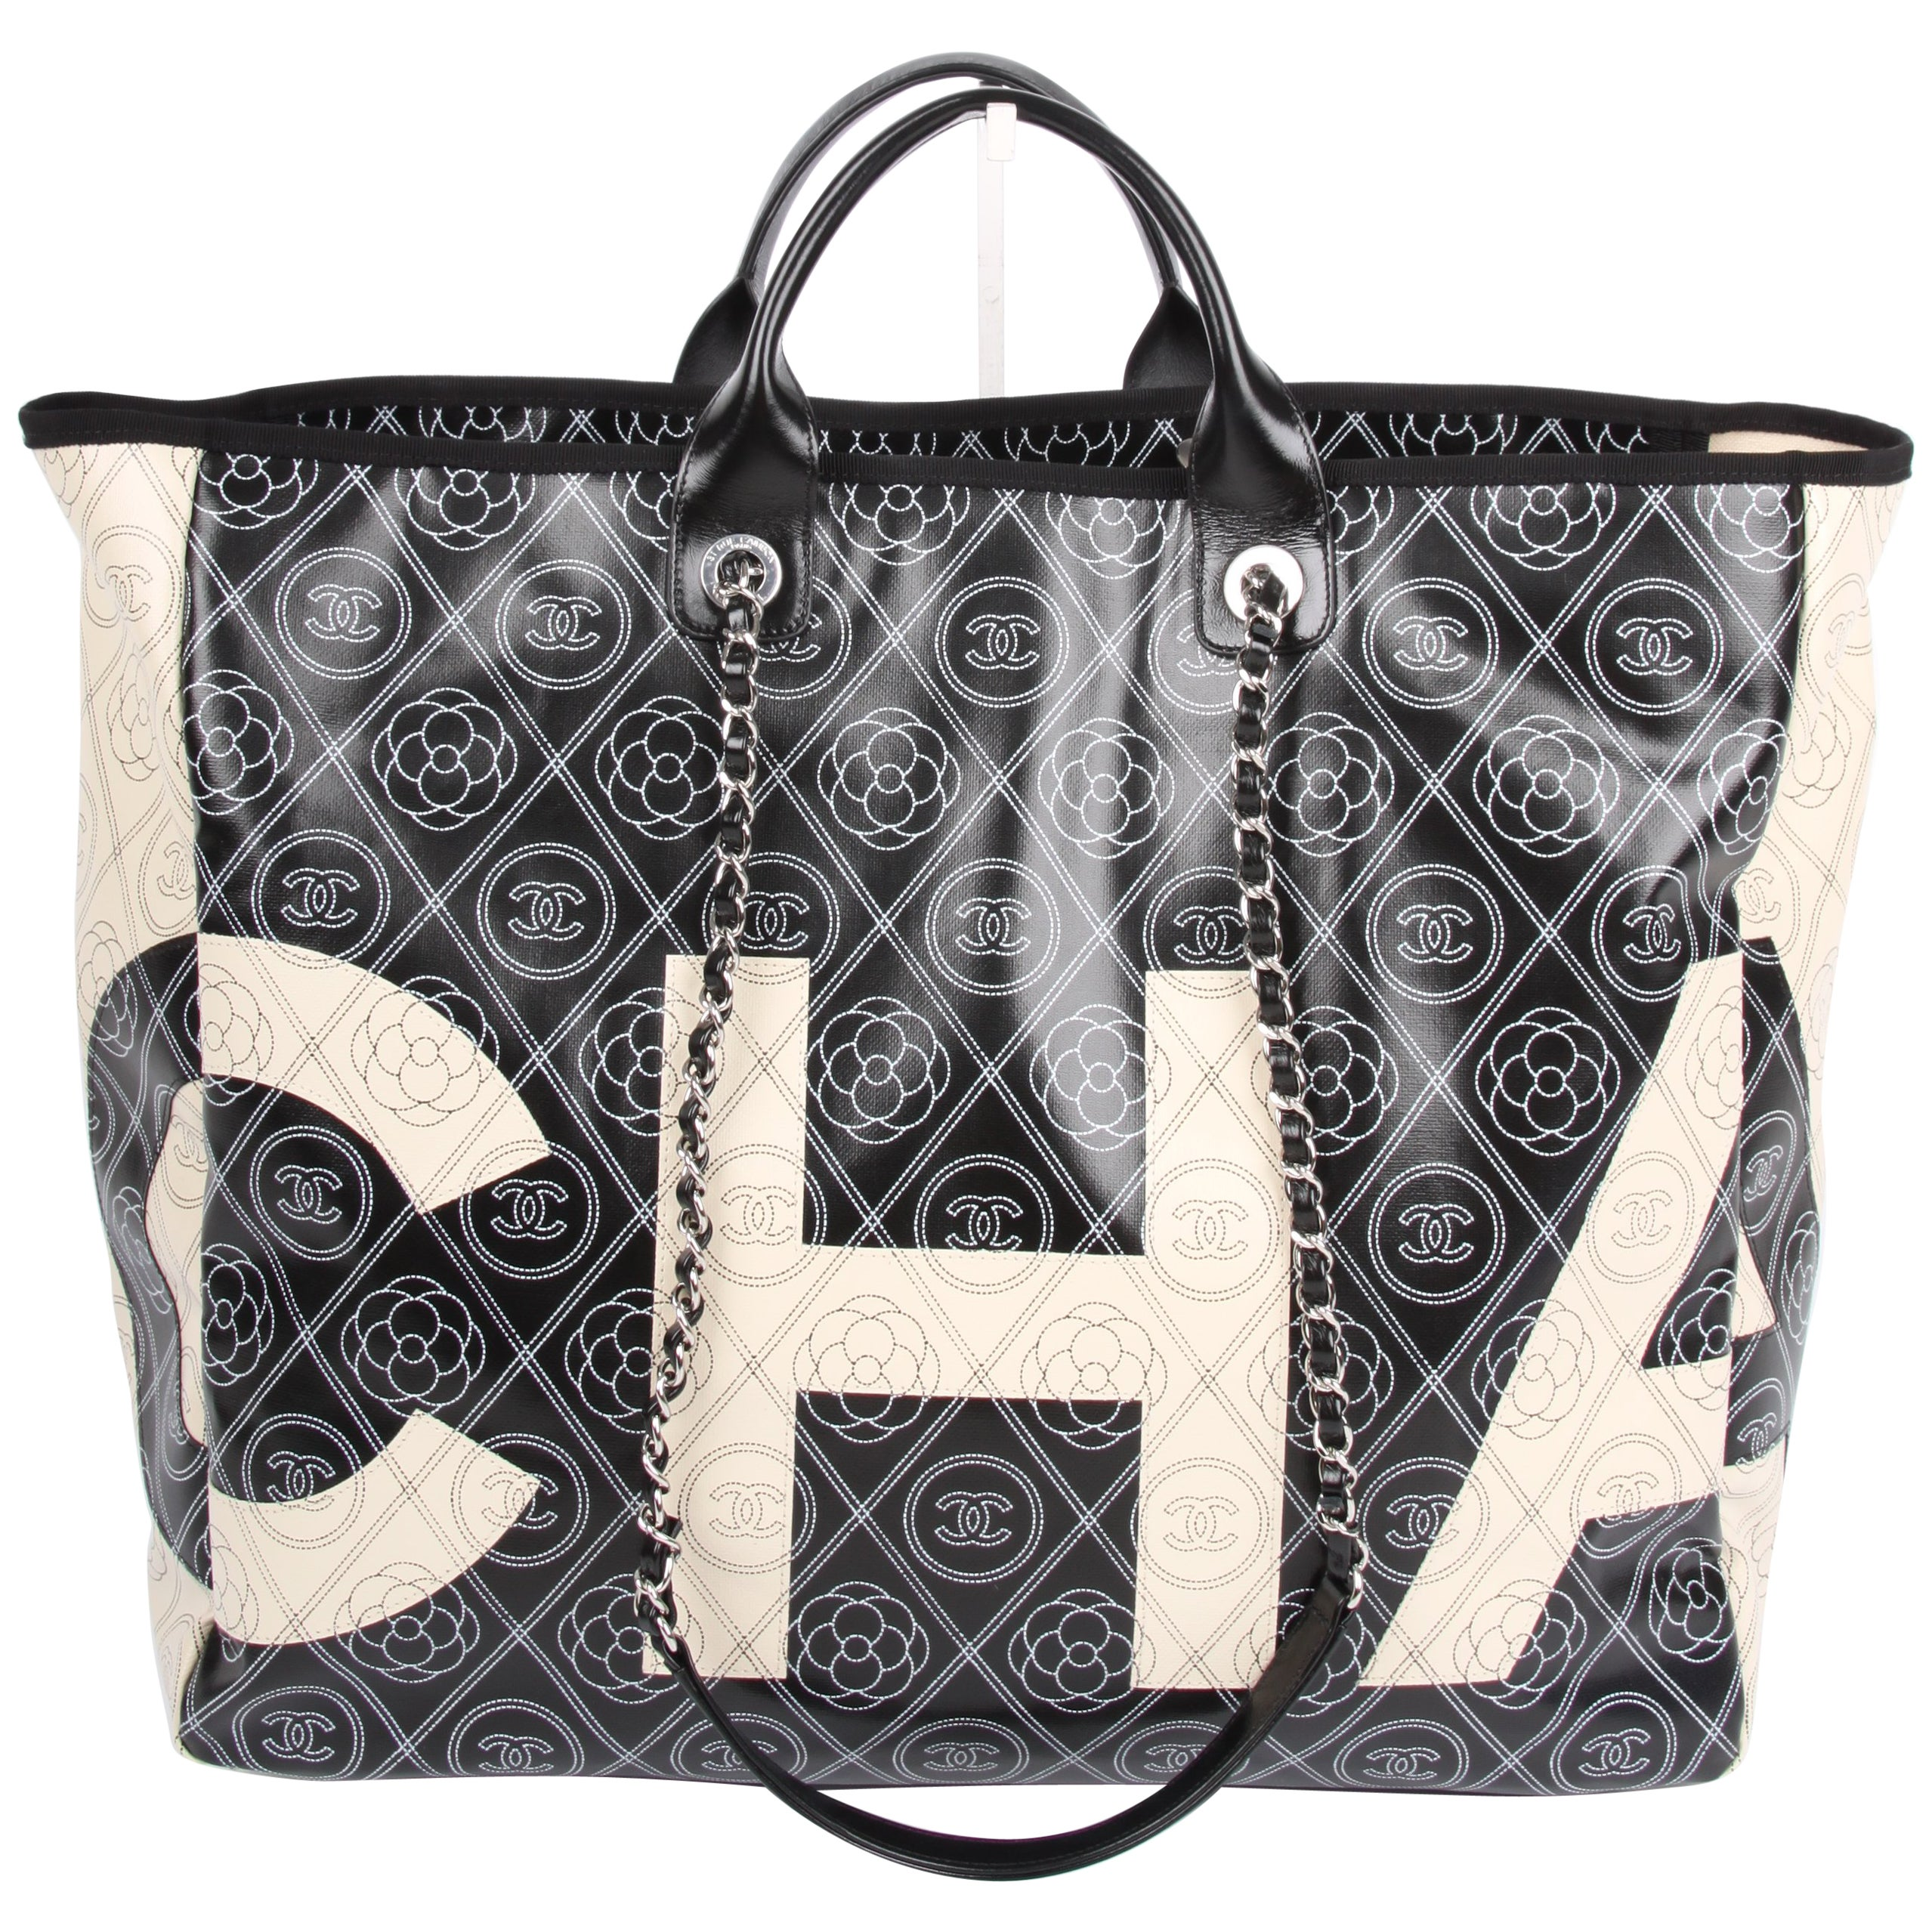 103b77dfb8ab Chanel black and white Deauville Canvas Tote Runway Bag